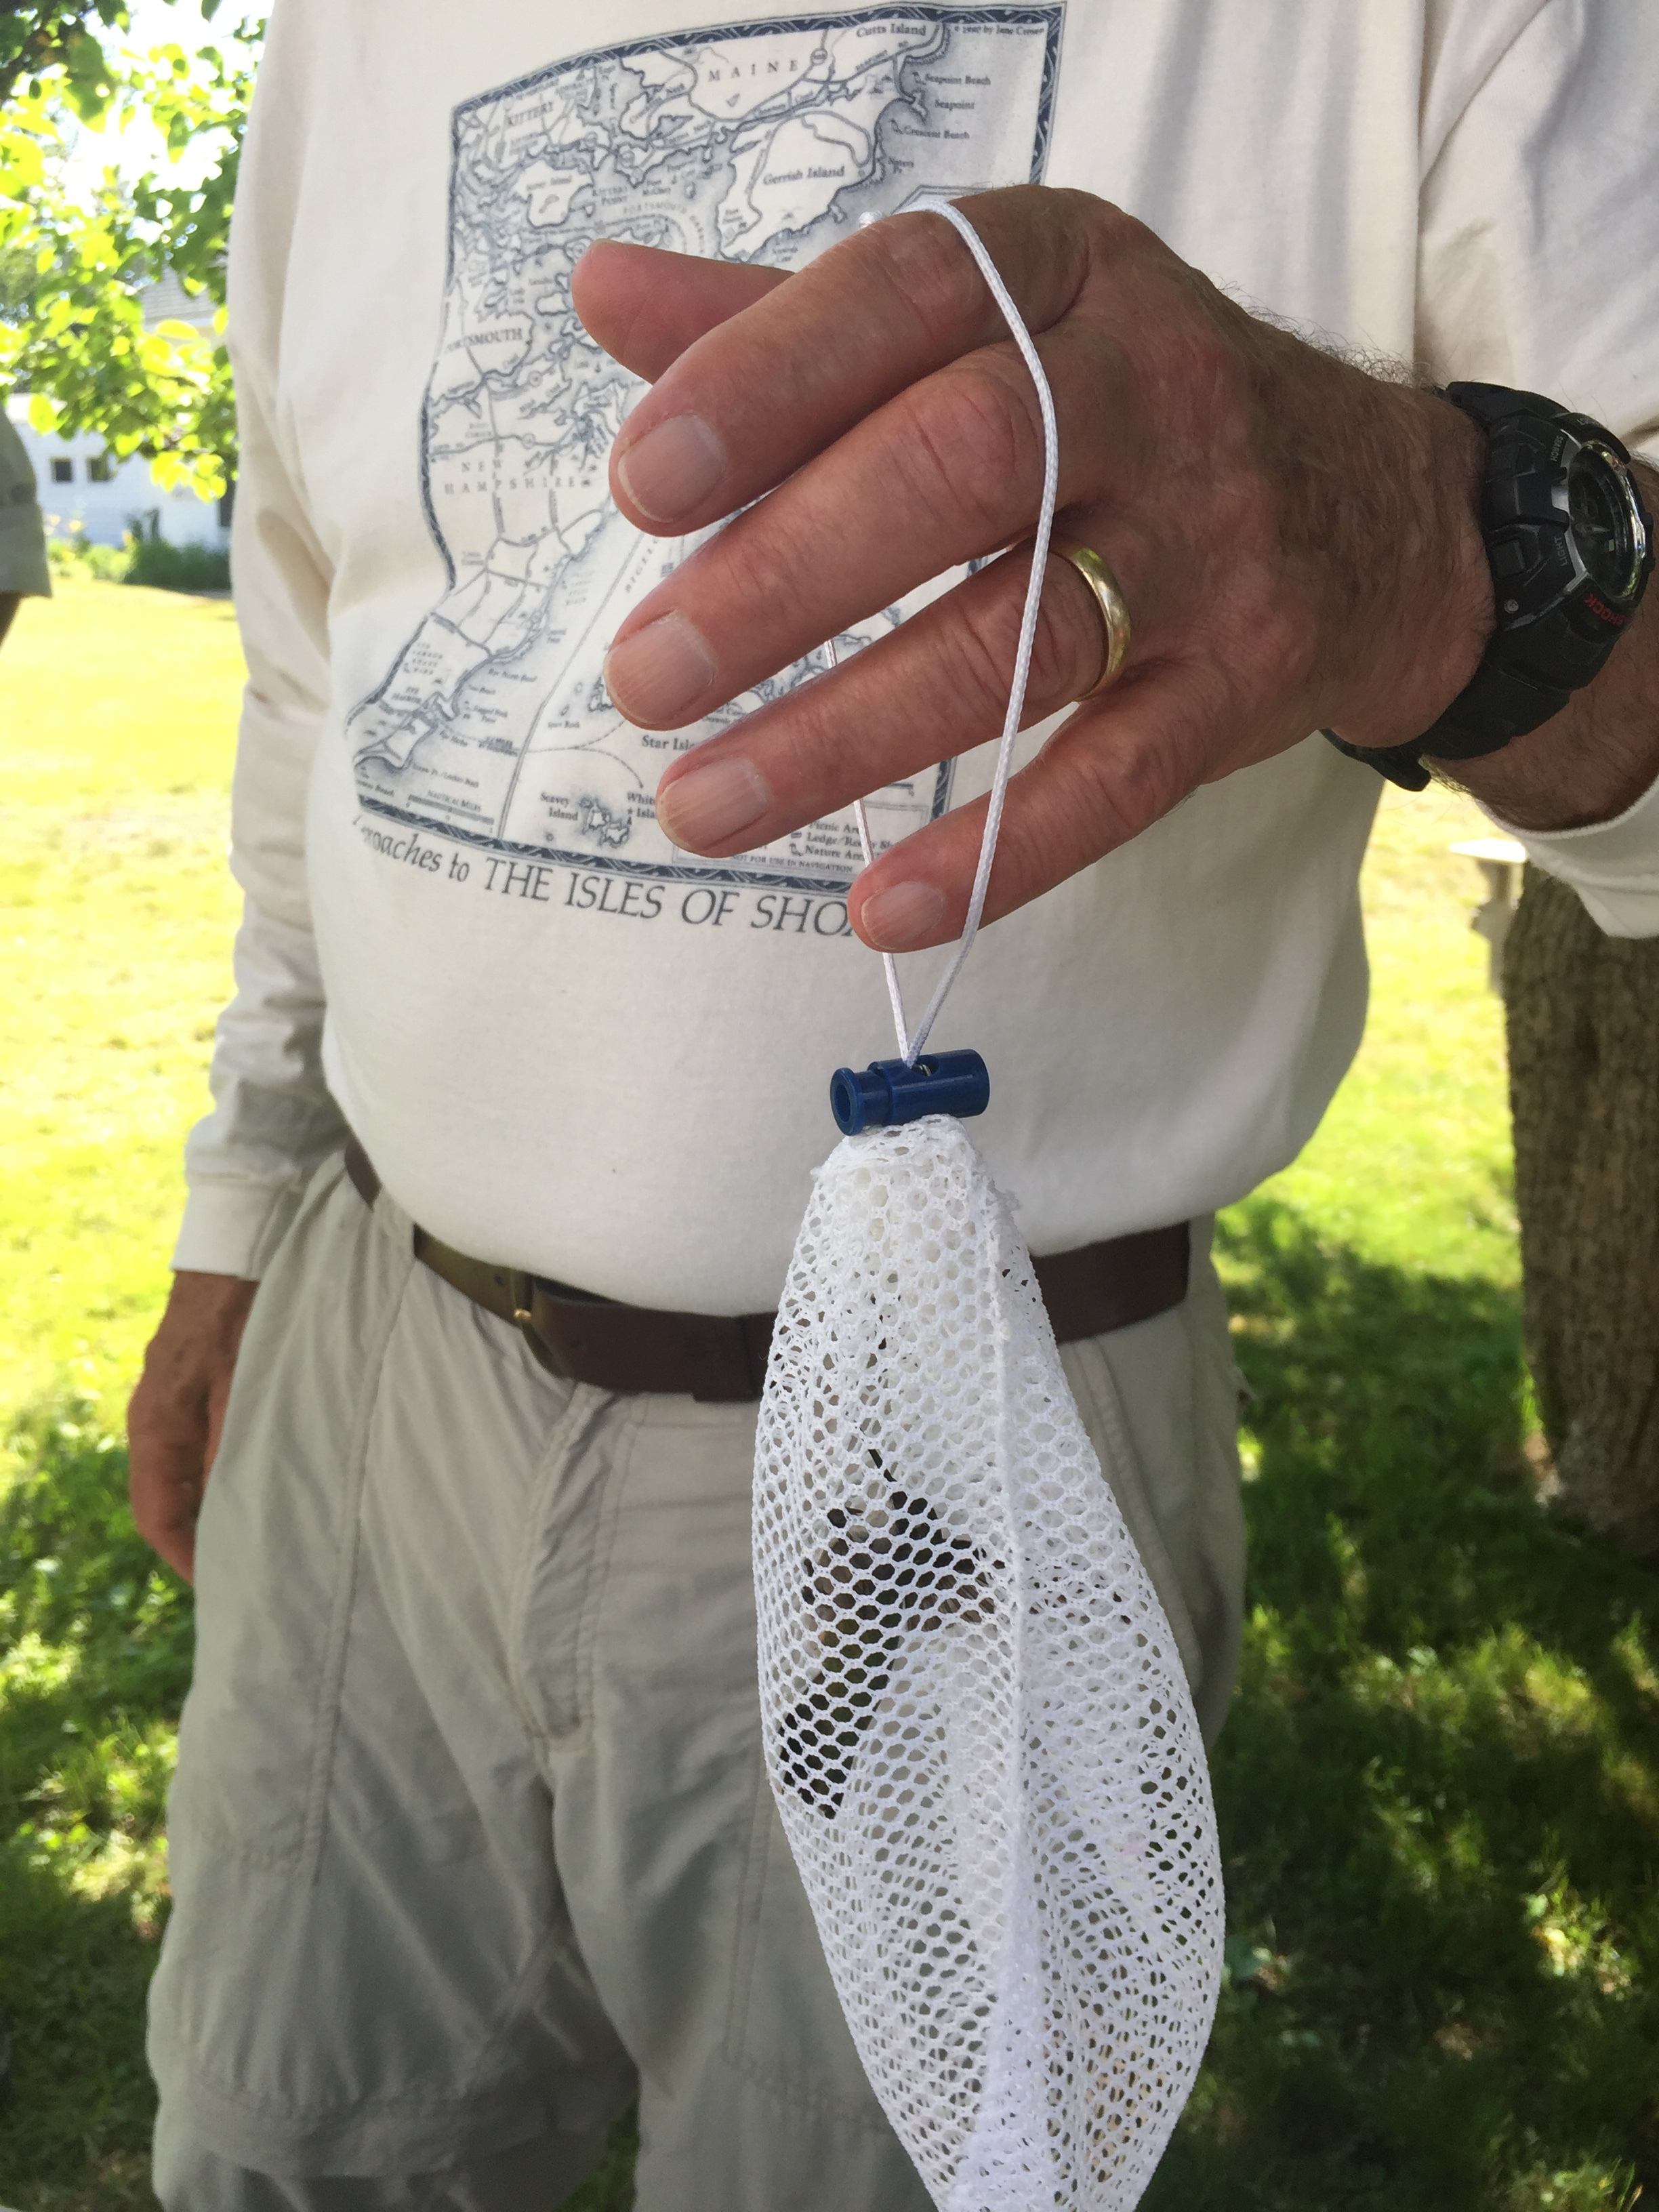 A Ruby-throated hummingbird is transported from trap to the banding station in a soft mesh bag